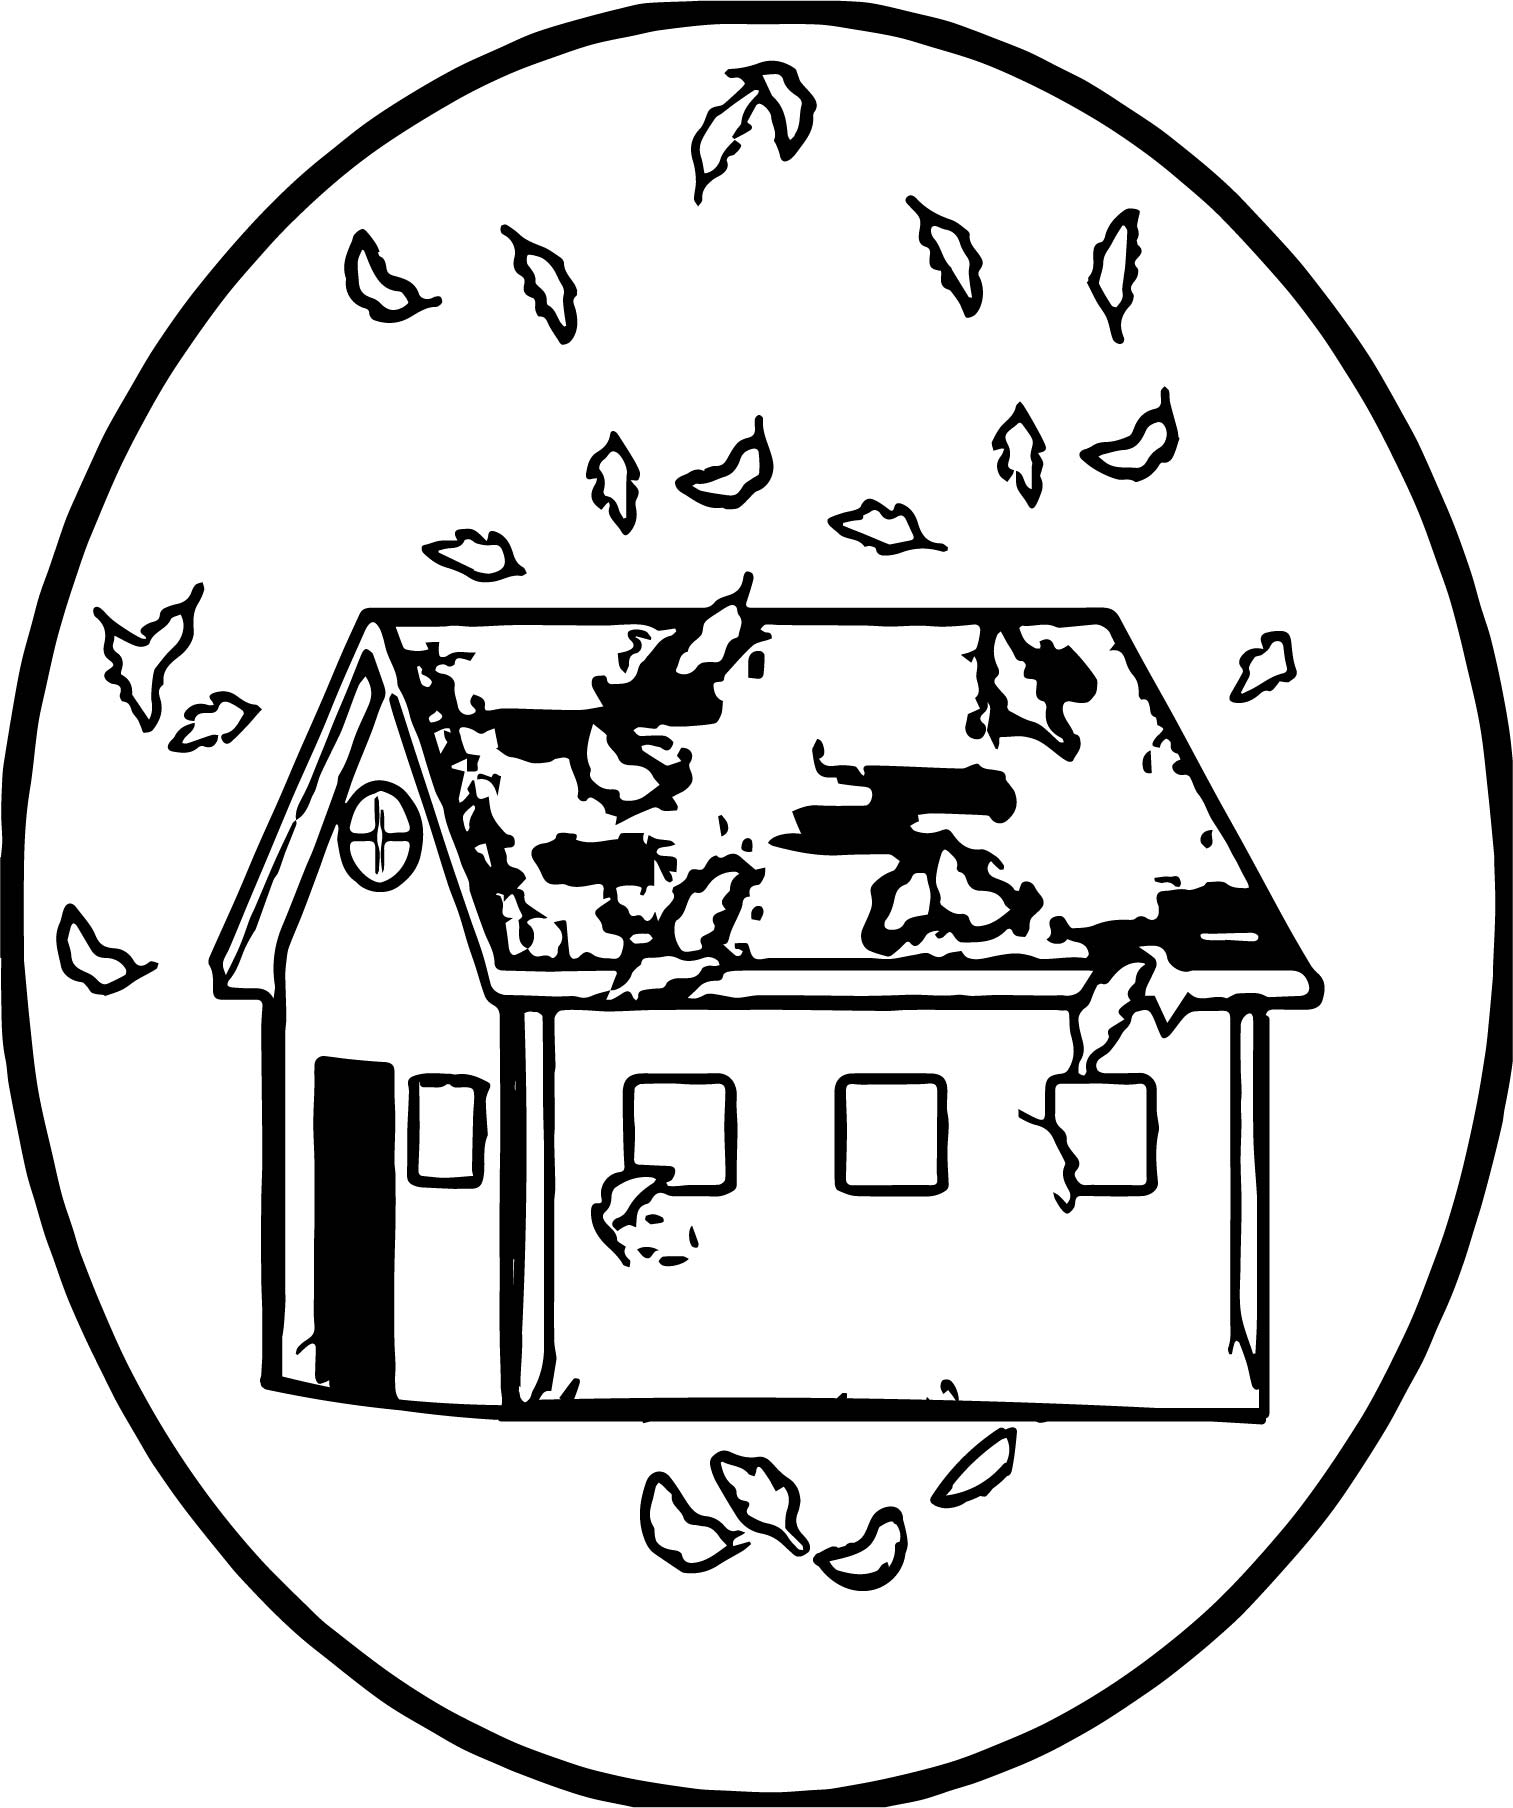 Autumn Leaves Falling On A House During The Fall Season Coloring Page